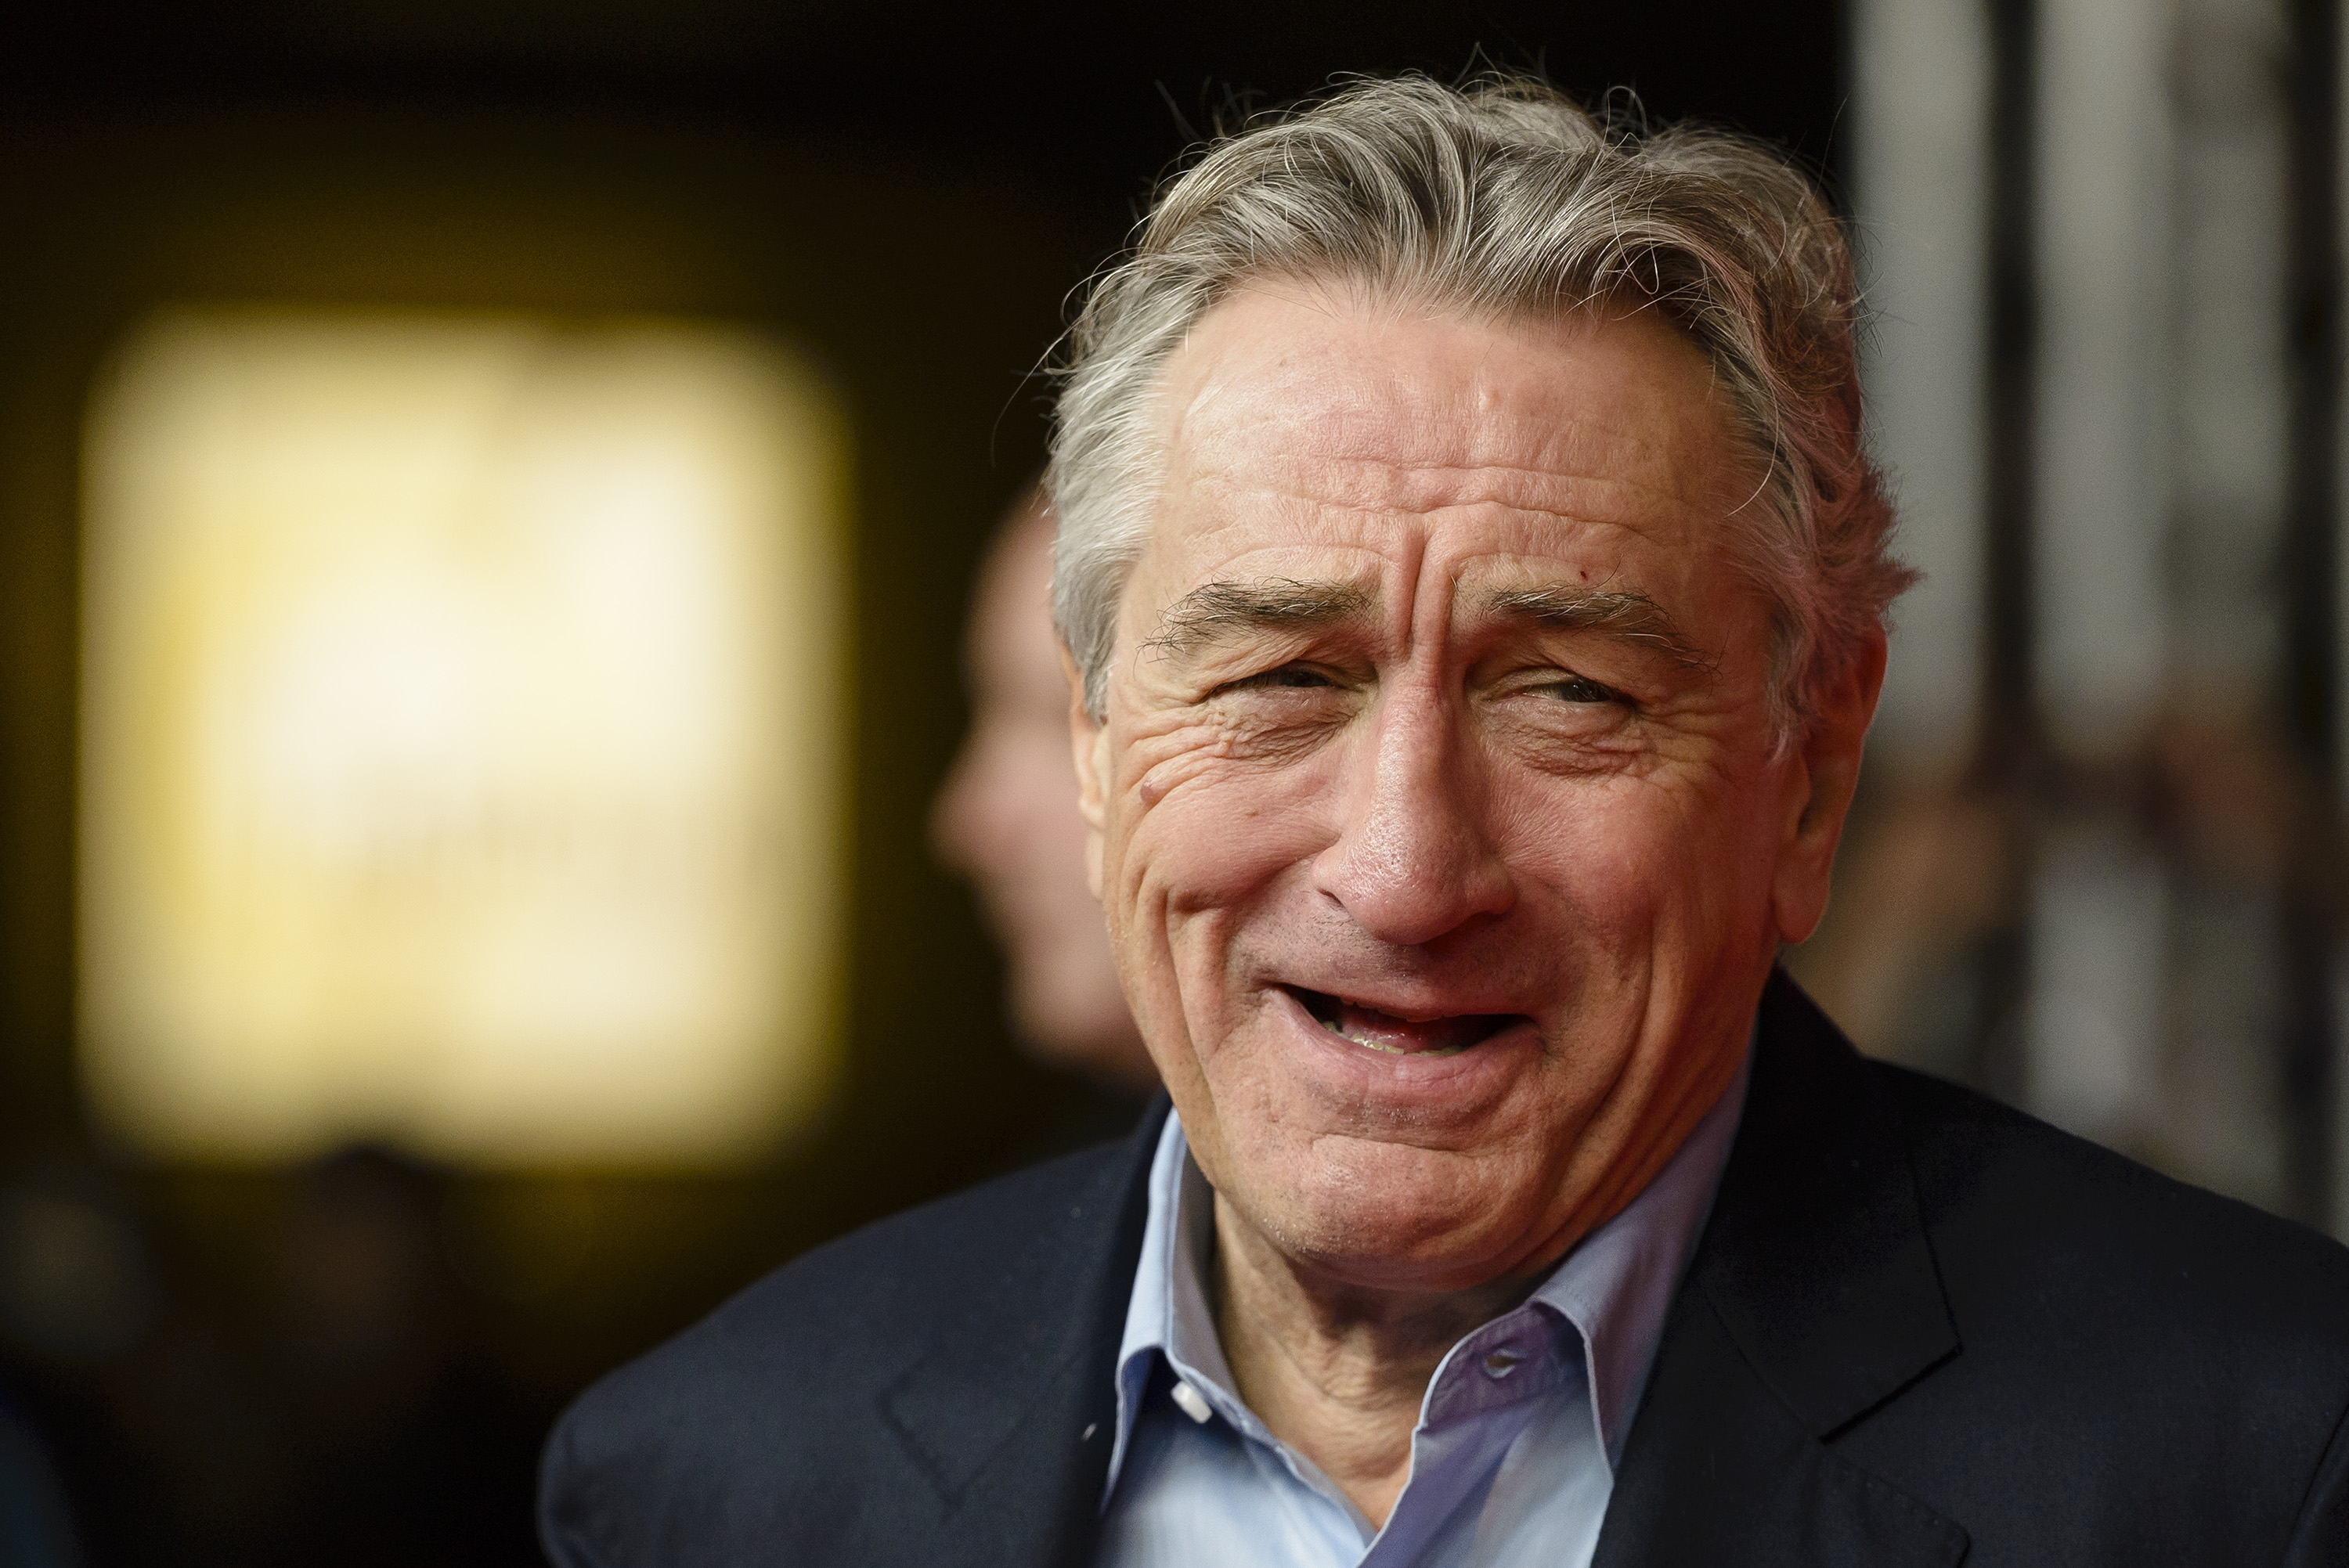 73-year-old Robert De Niro to play 25-year-old in The Irishman